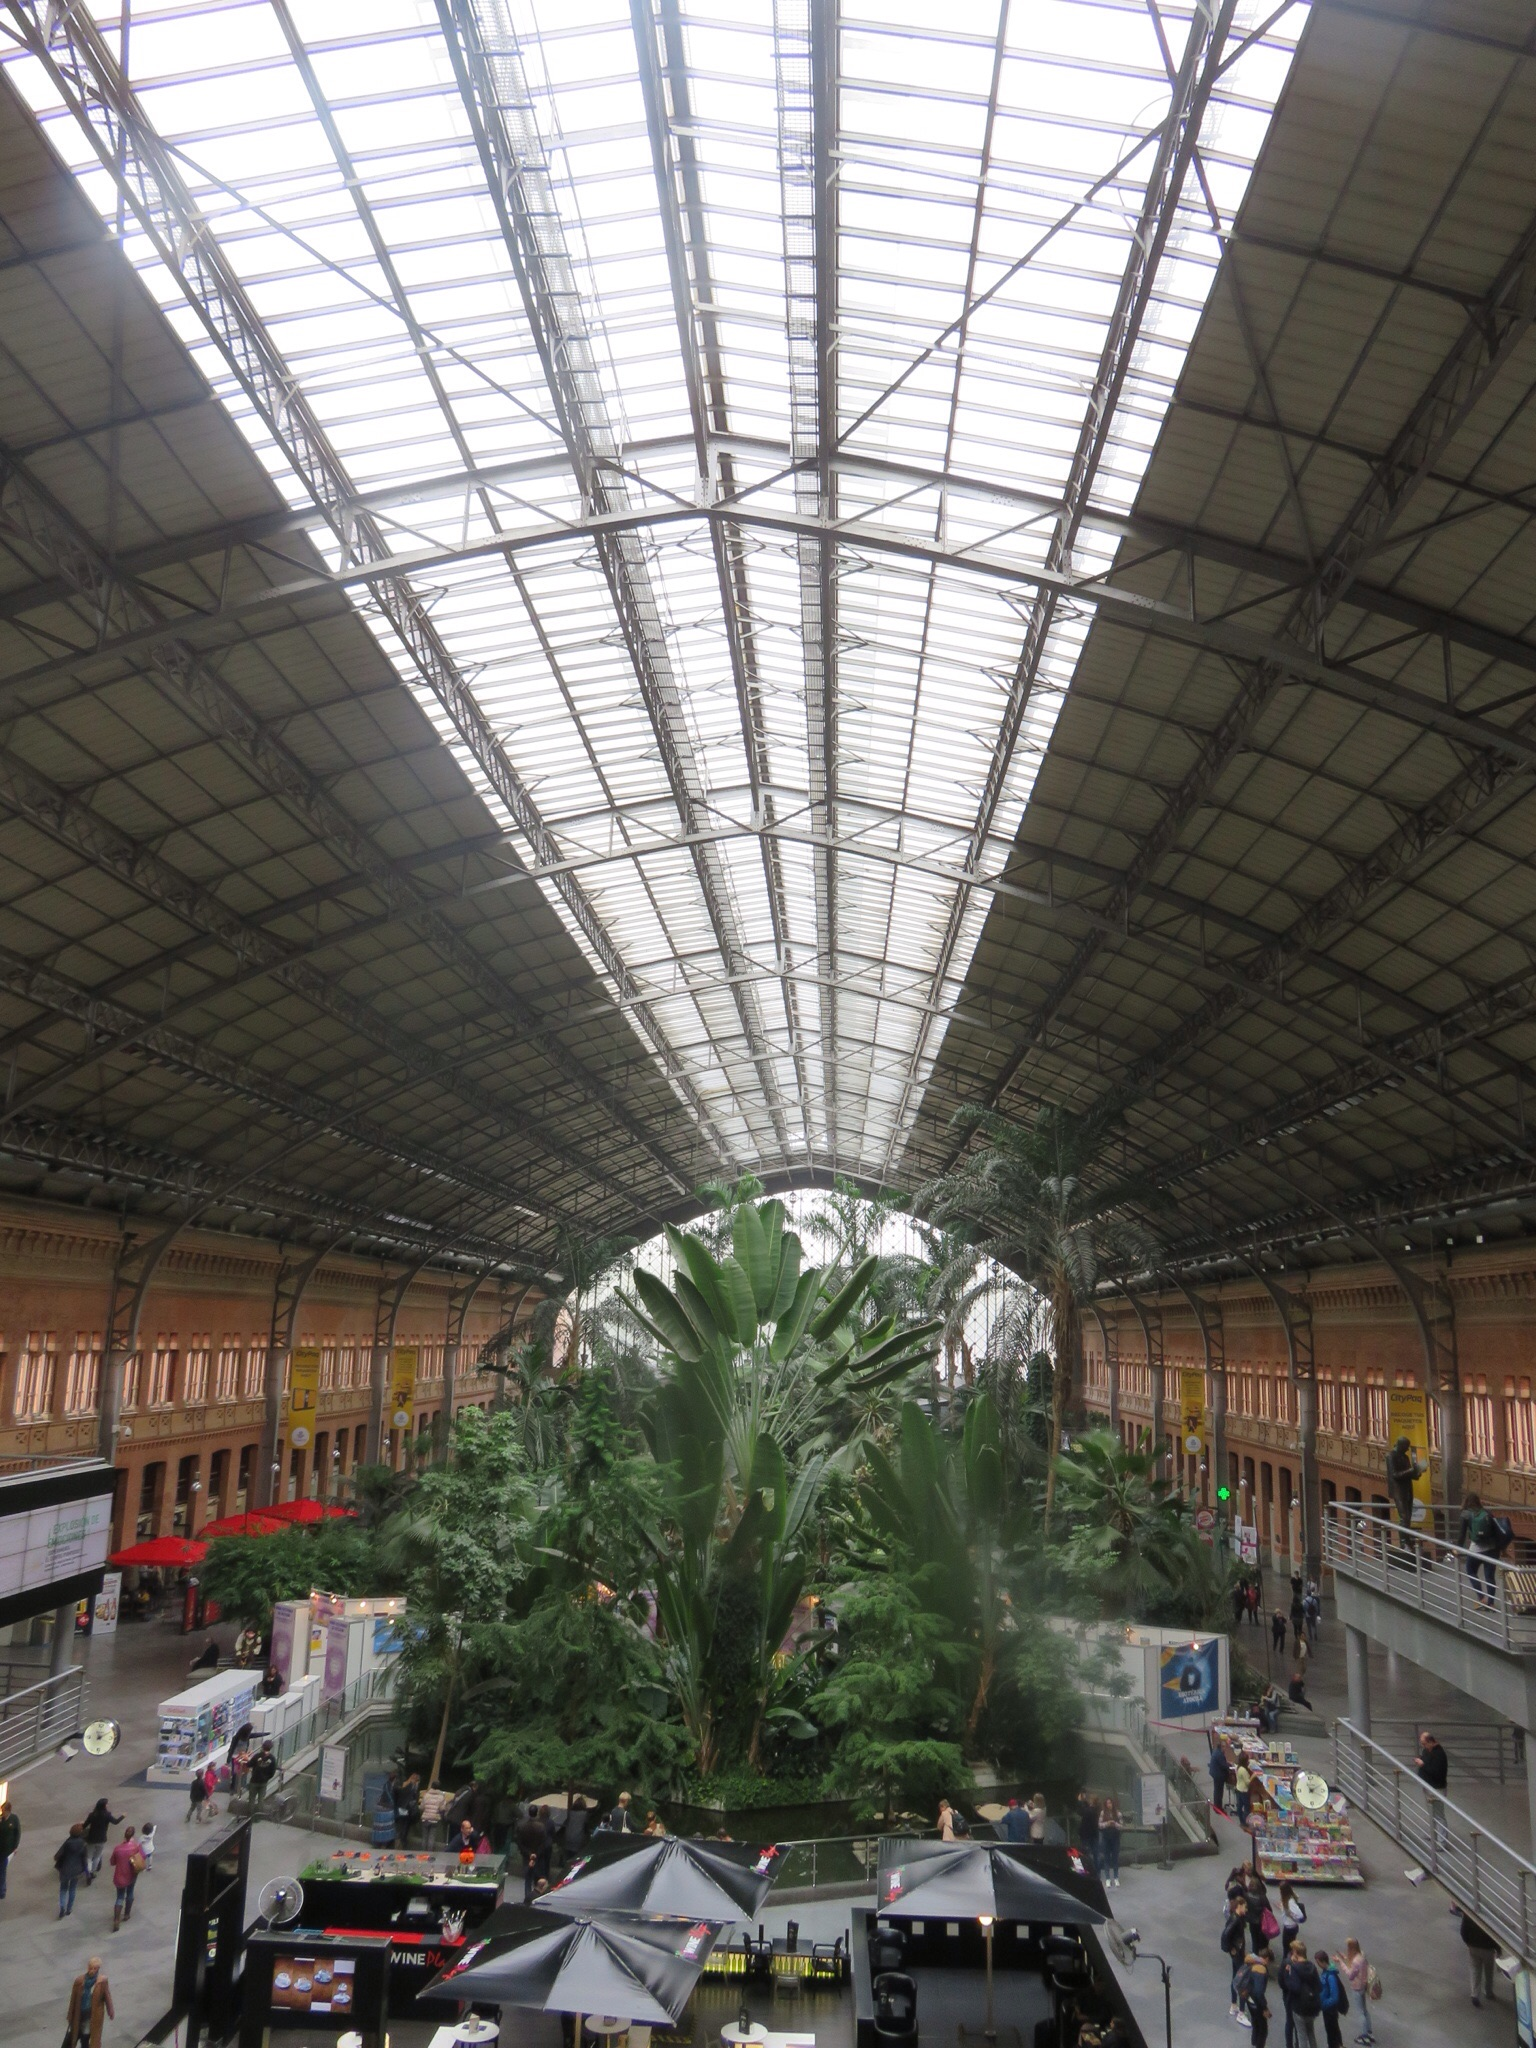 Interior of Madrid's Atocha train station - a tropical garden!